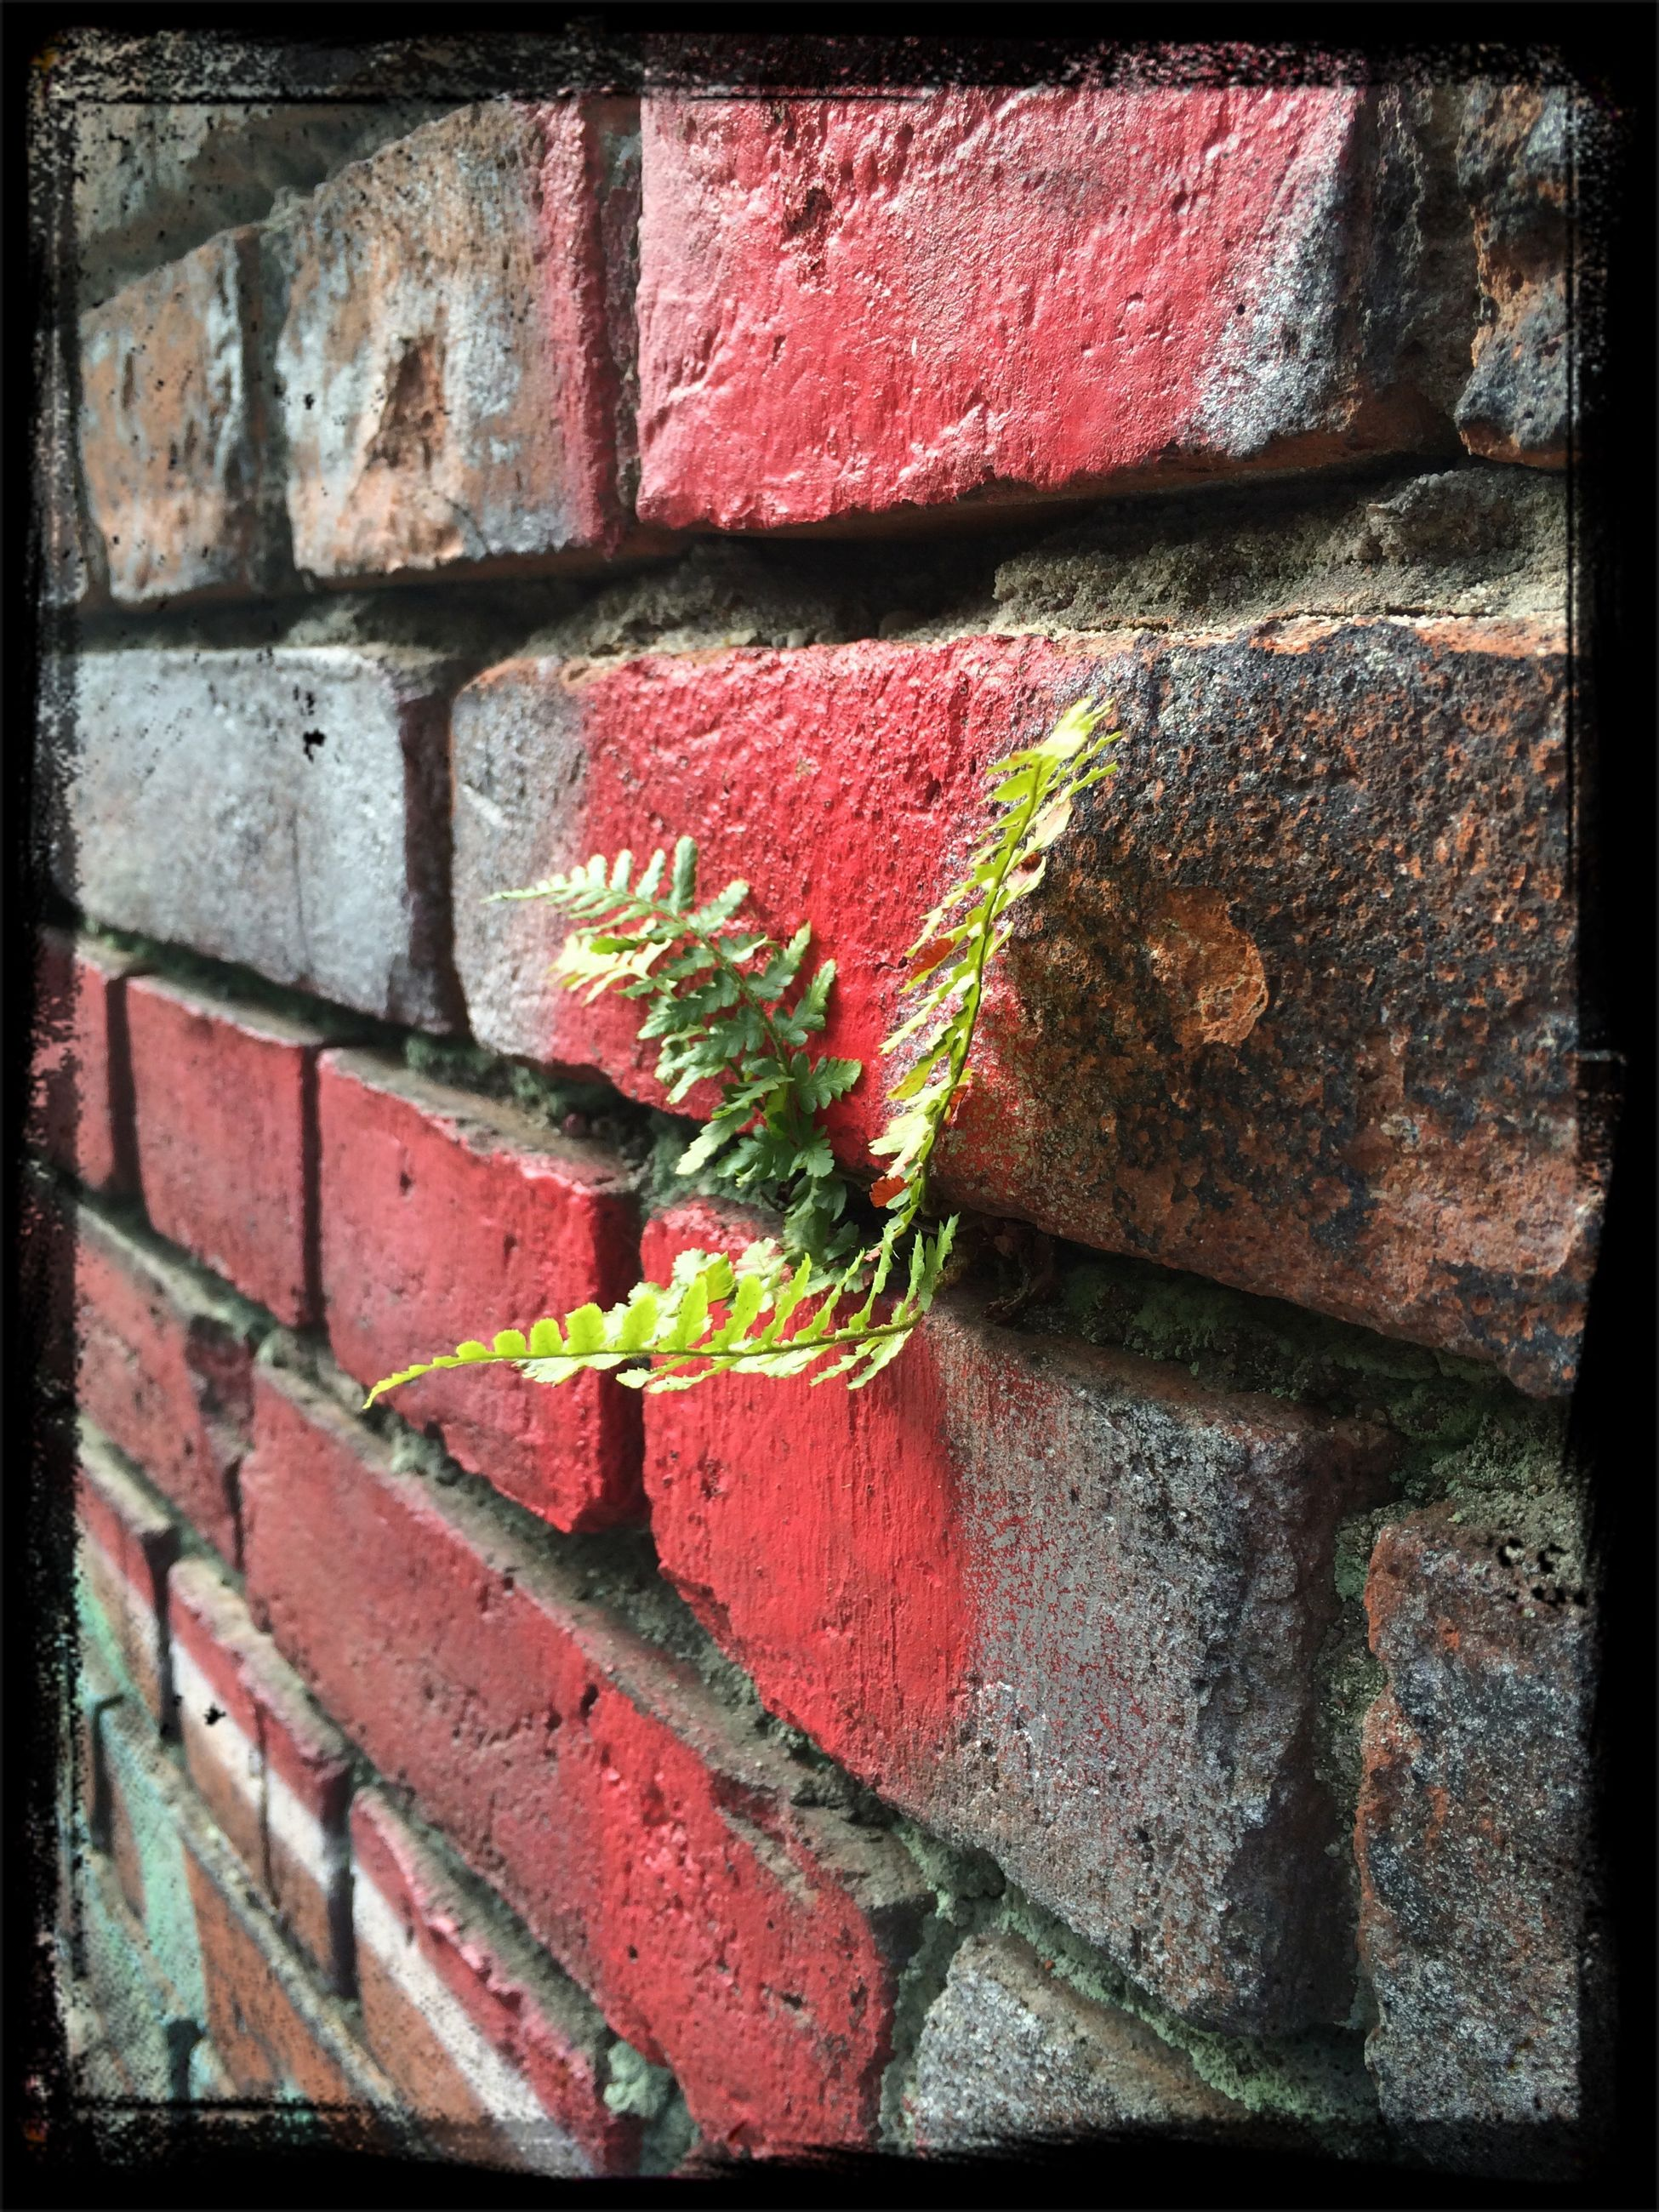 brick wall, wall - building feature, built structure, red, architecture, full frame, growth, stone wall, building exterior, plant, close-up, backgrounds, textured, auto post production filter, transfer print, brick, day, outdoors, wall, no people